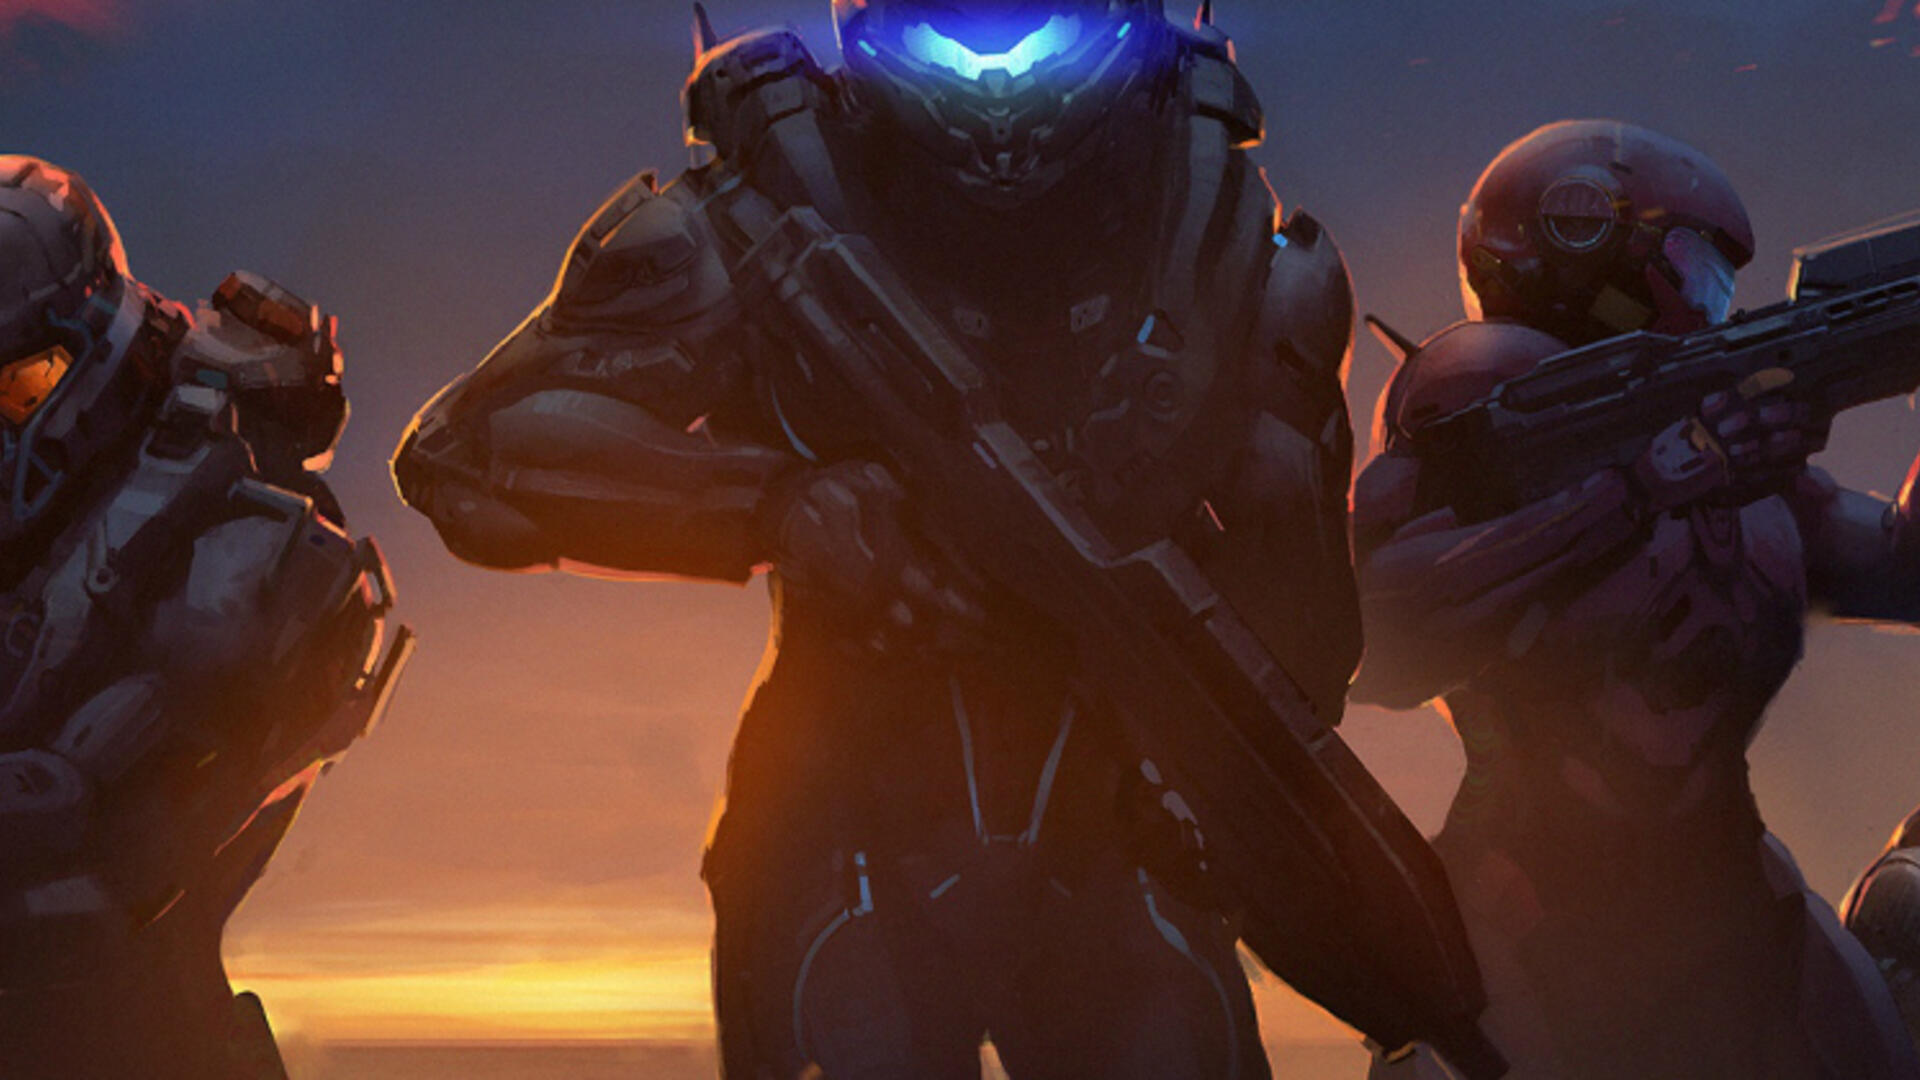 Halo 5: Guardians Xbox One Review: Three in One